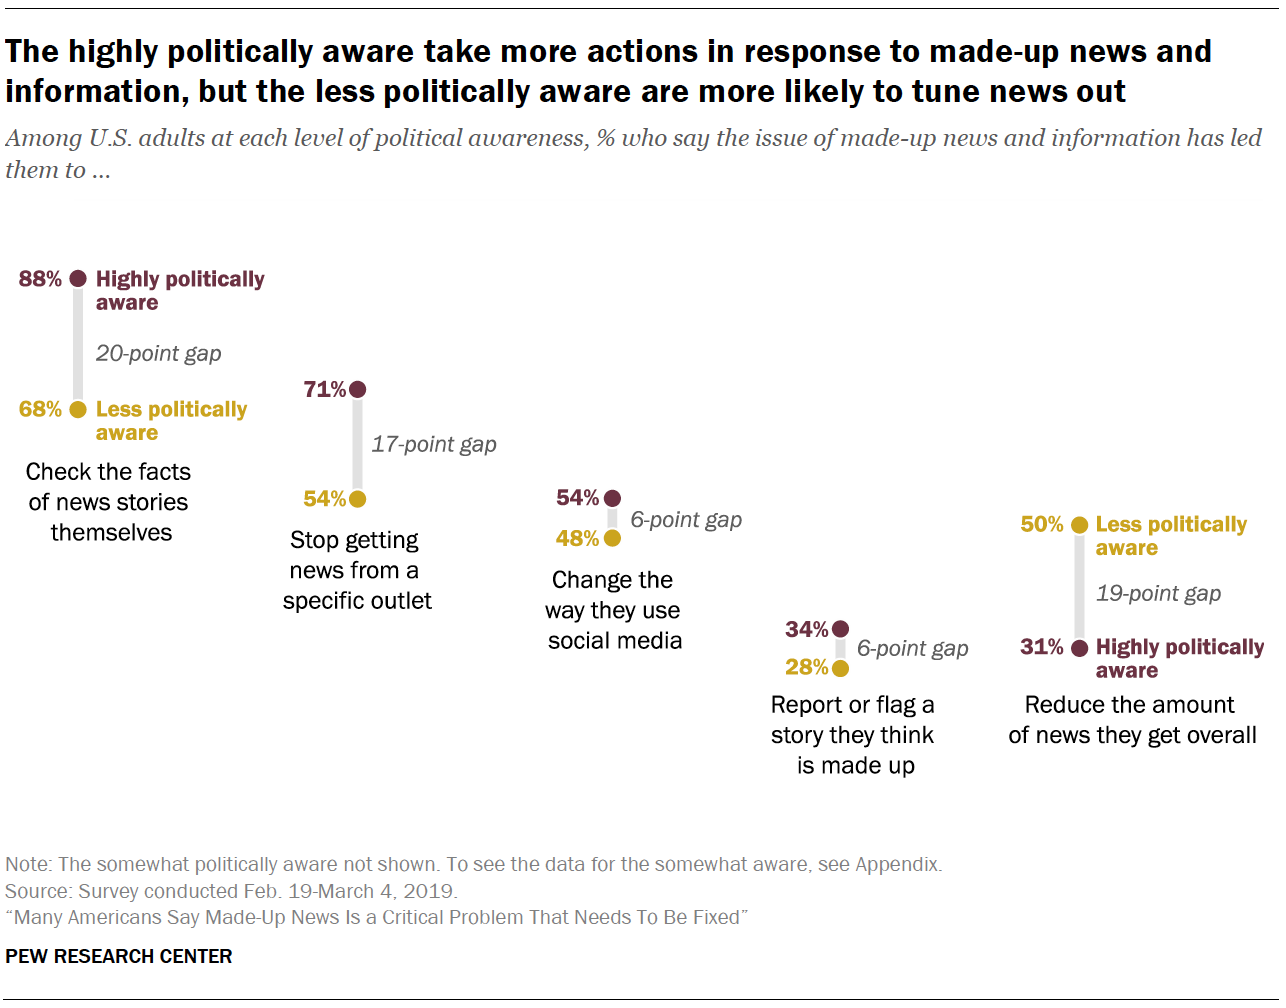 A chart showing The highly politically aware take more actions in response to made-up news and information, but the less politically aware are more likely to tune news out